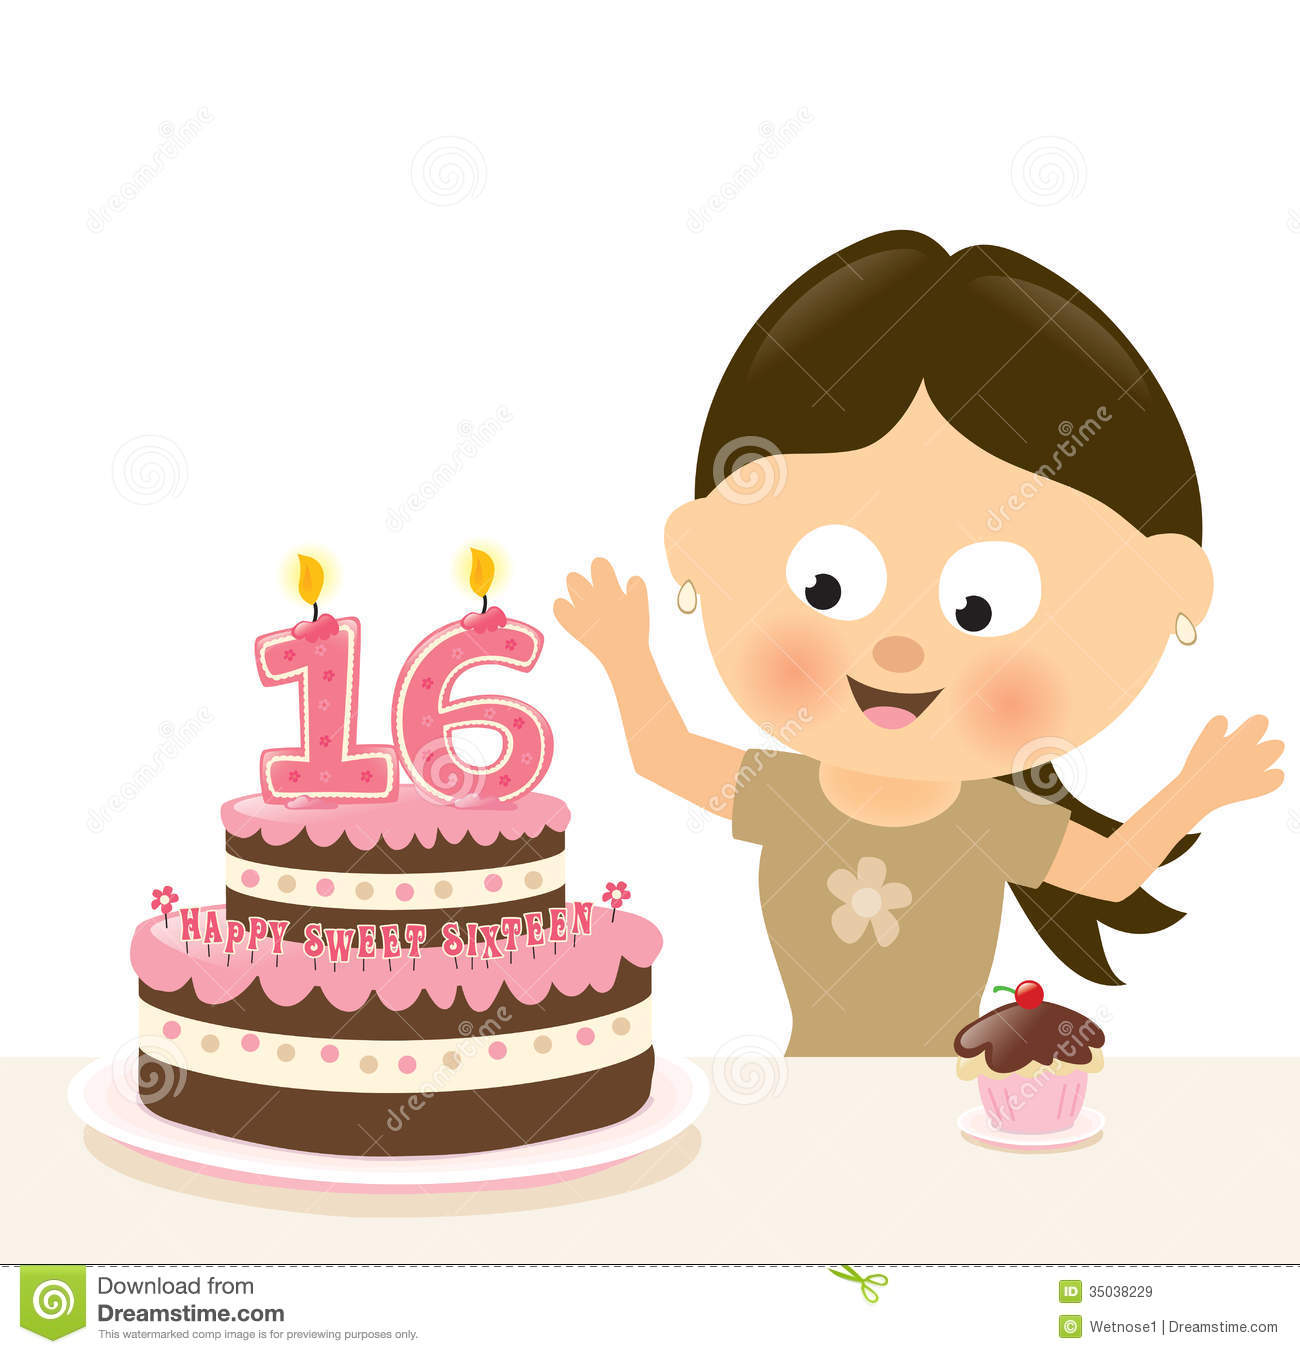 13th Birthday Cakes On Sweet Sixteen Clip Art Images Sweet Sixteen